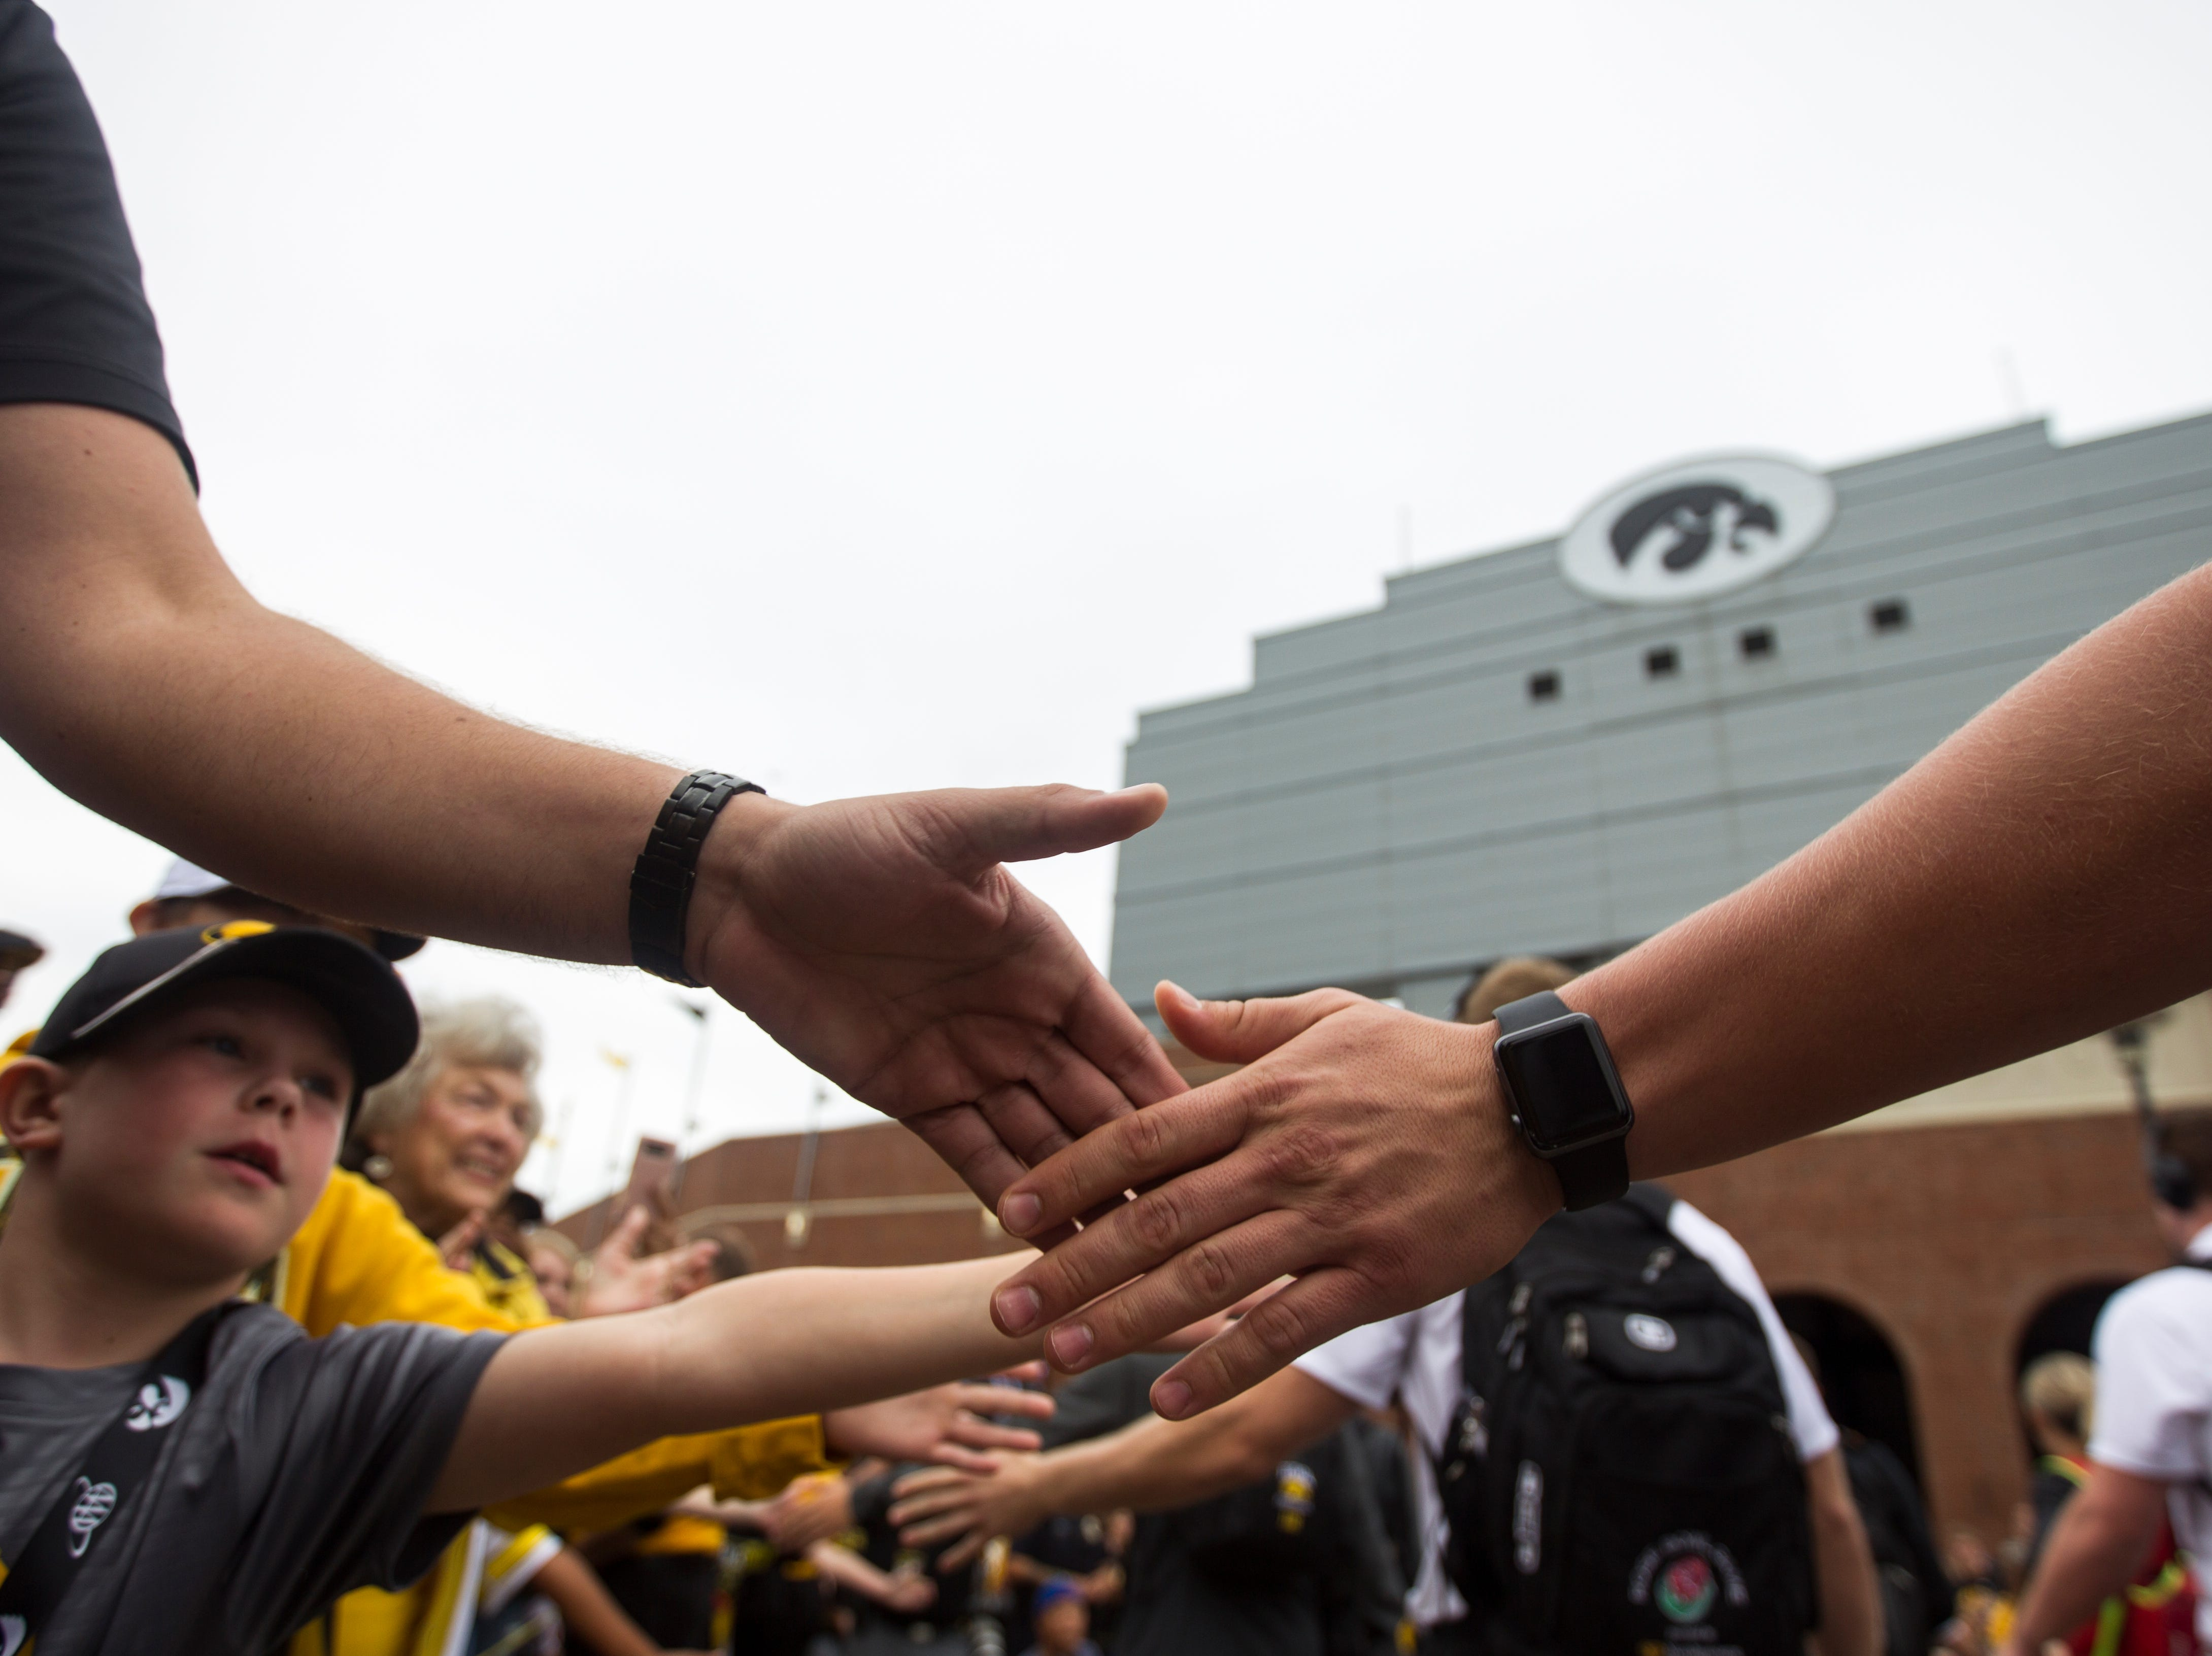 Fans high-five players as they walk into the stadium before the Cy-Hawk NCAA football game on Saturday, Sept. 8, 2018, at Kinnick Stadium in Iowa City.